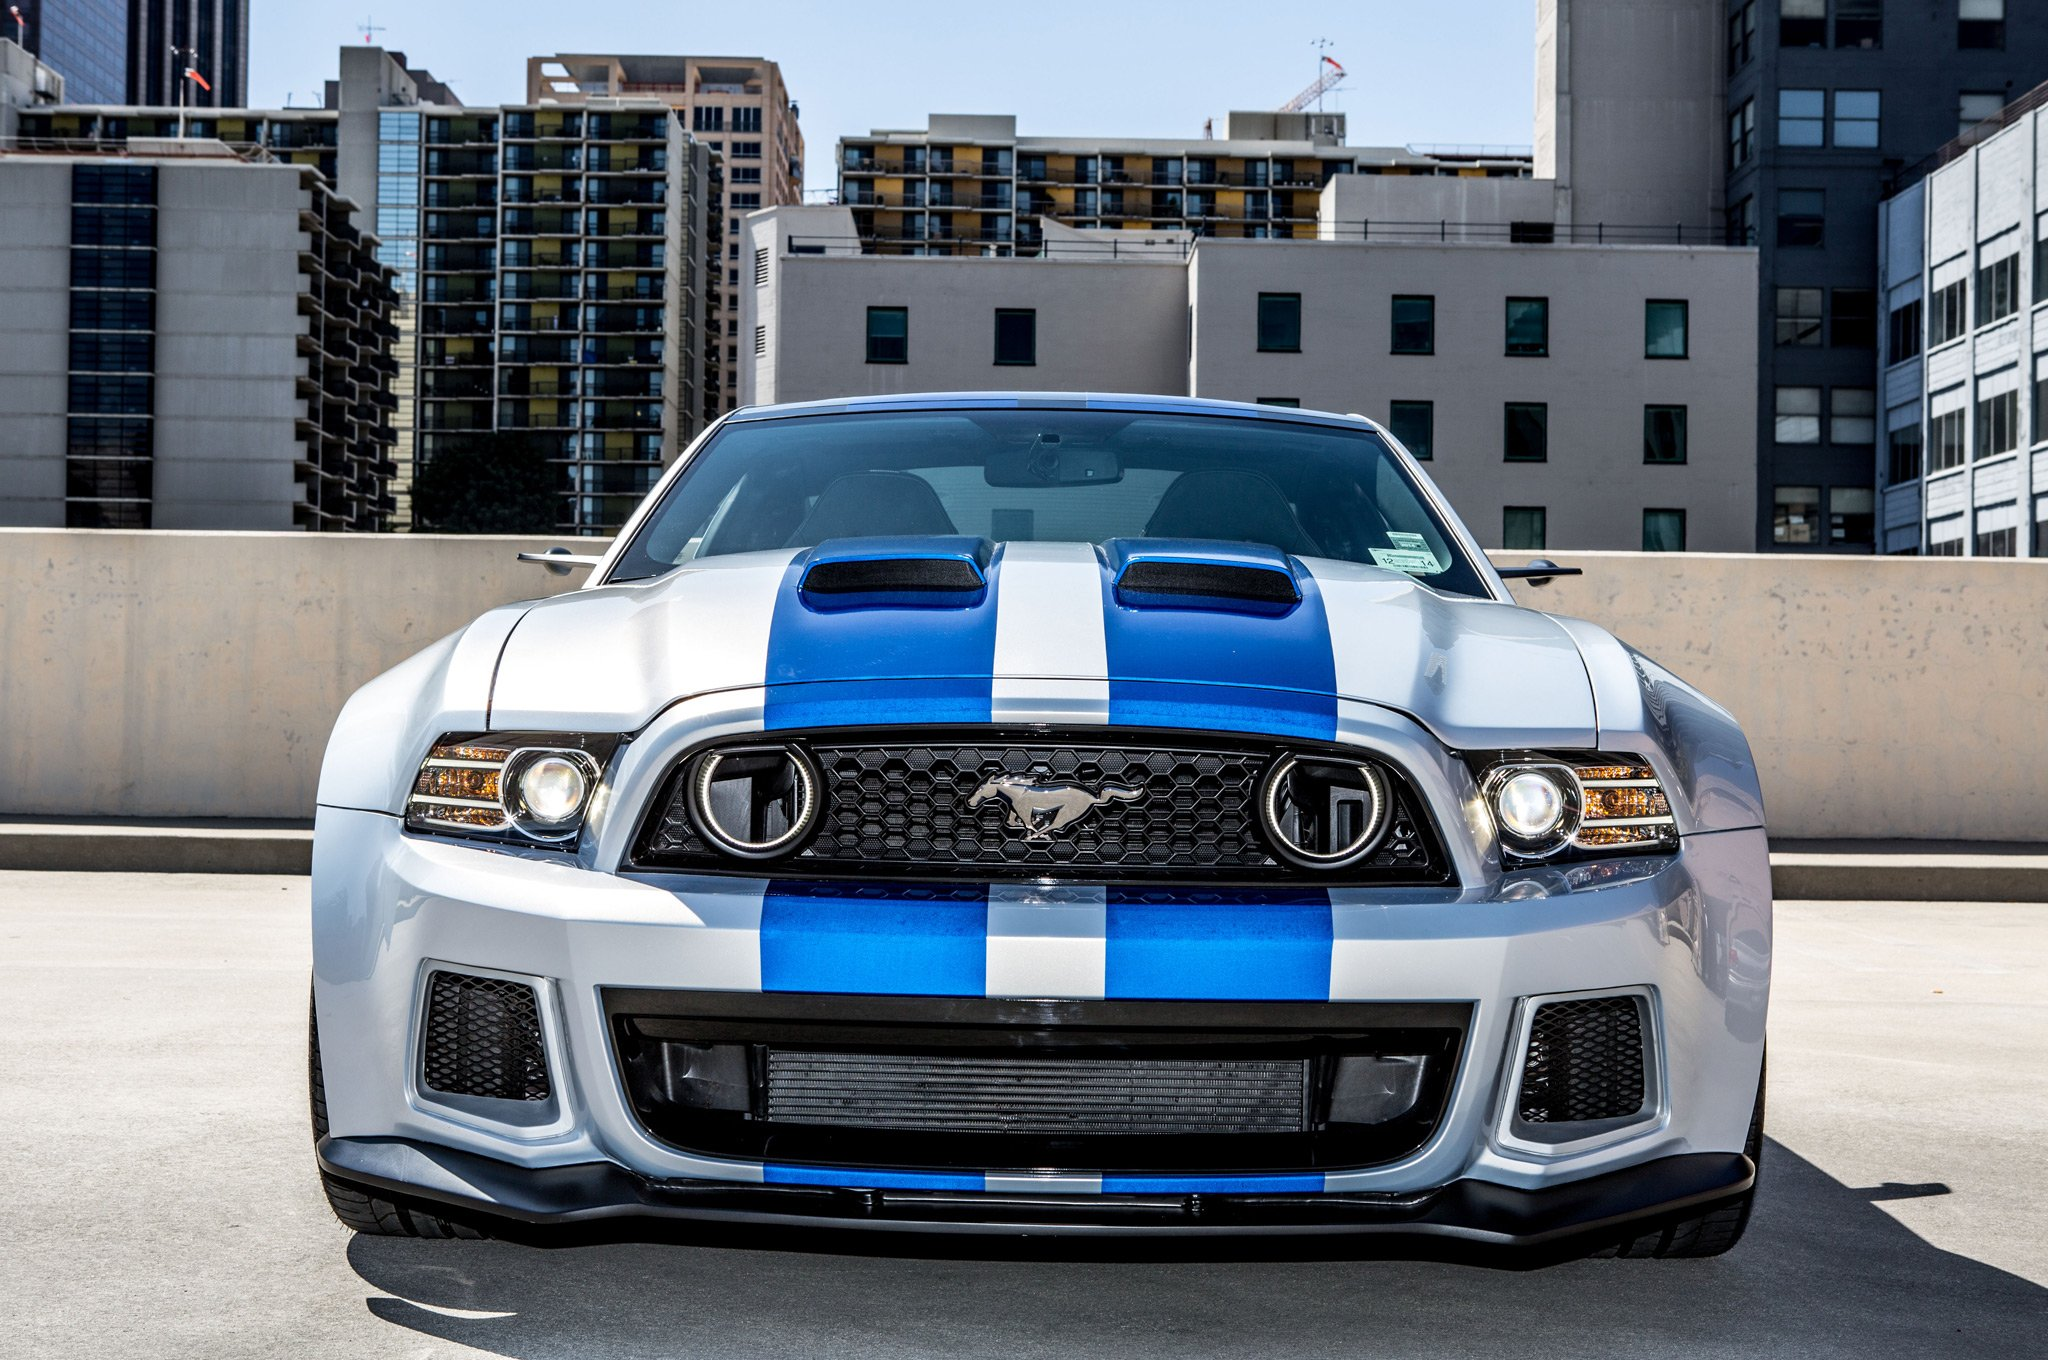 need for speed action crime drama ford mustang wallpaper 2048x1360 296687 wallpaperup. Black Bedroom Furniture Sets. Home Design Ideas